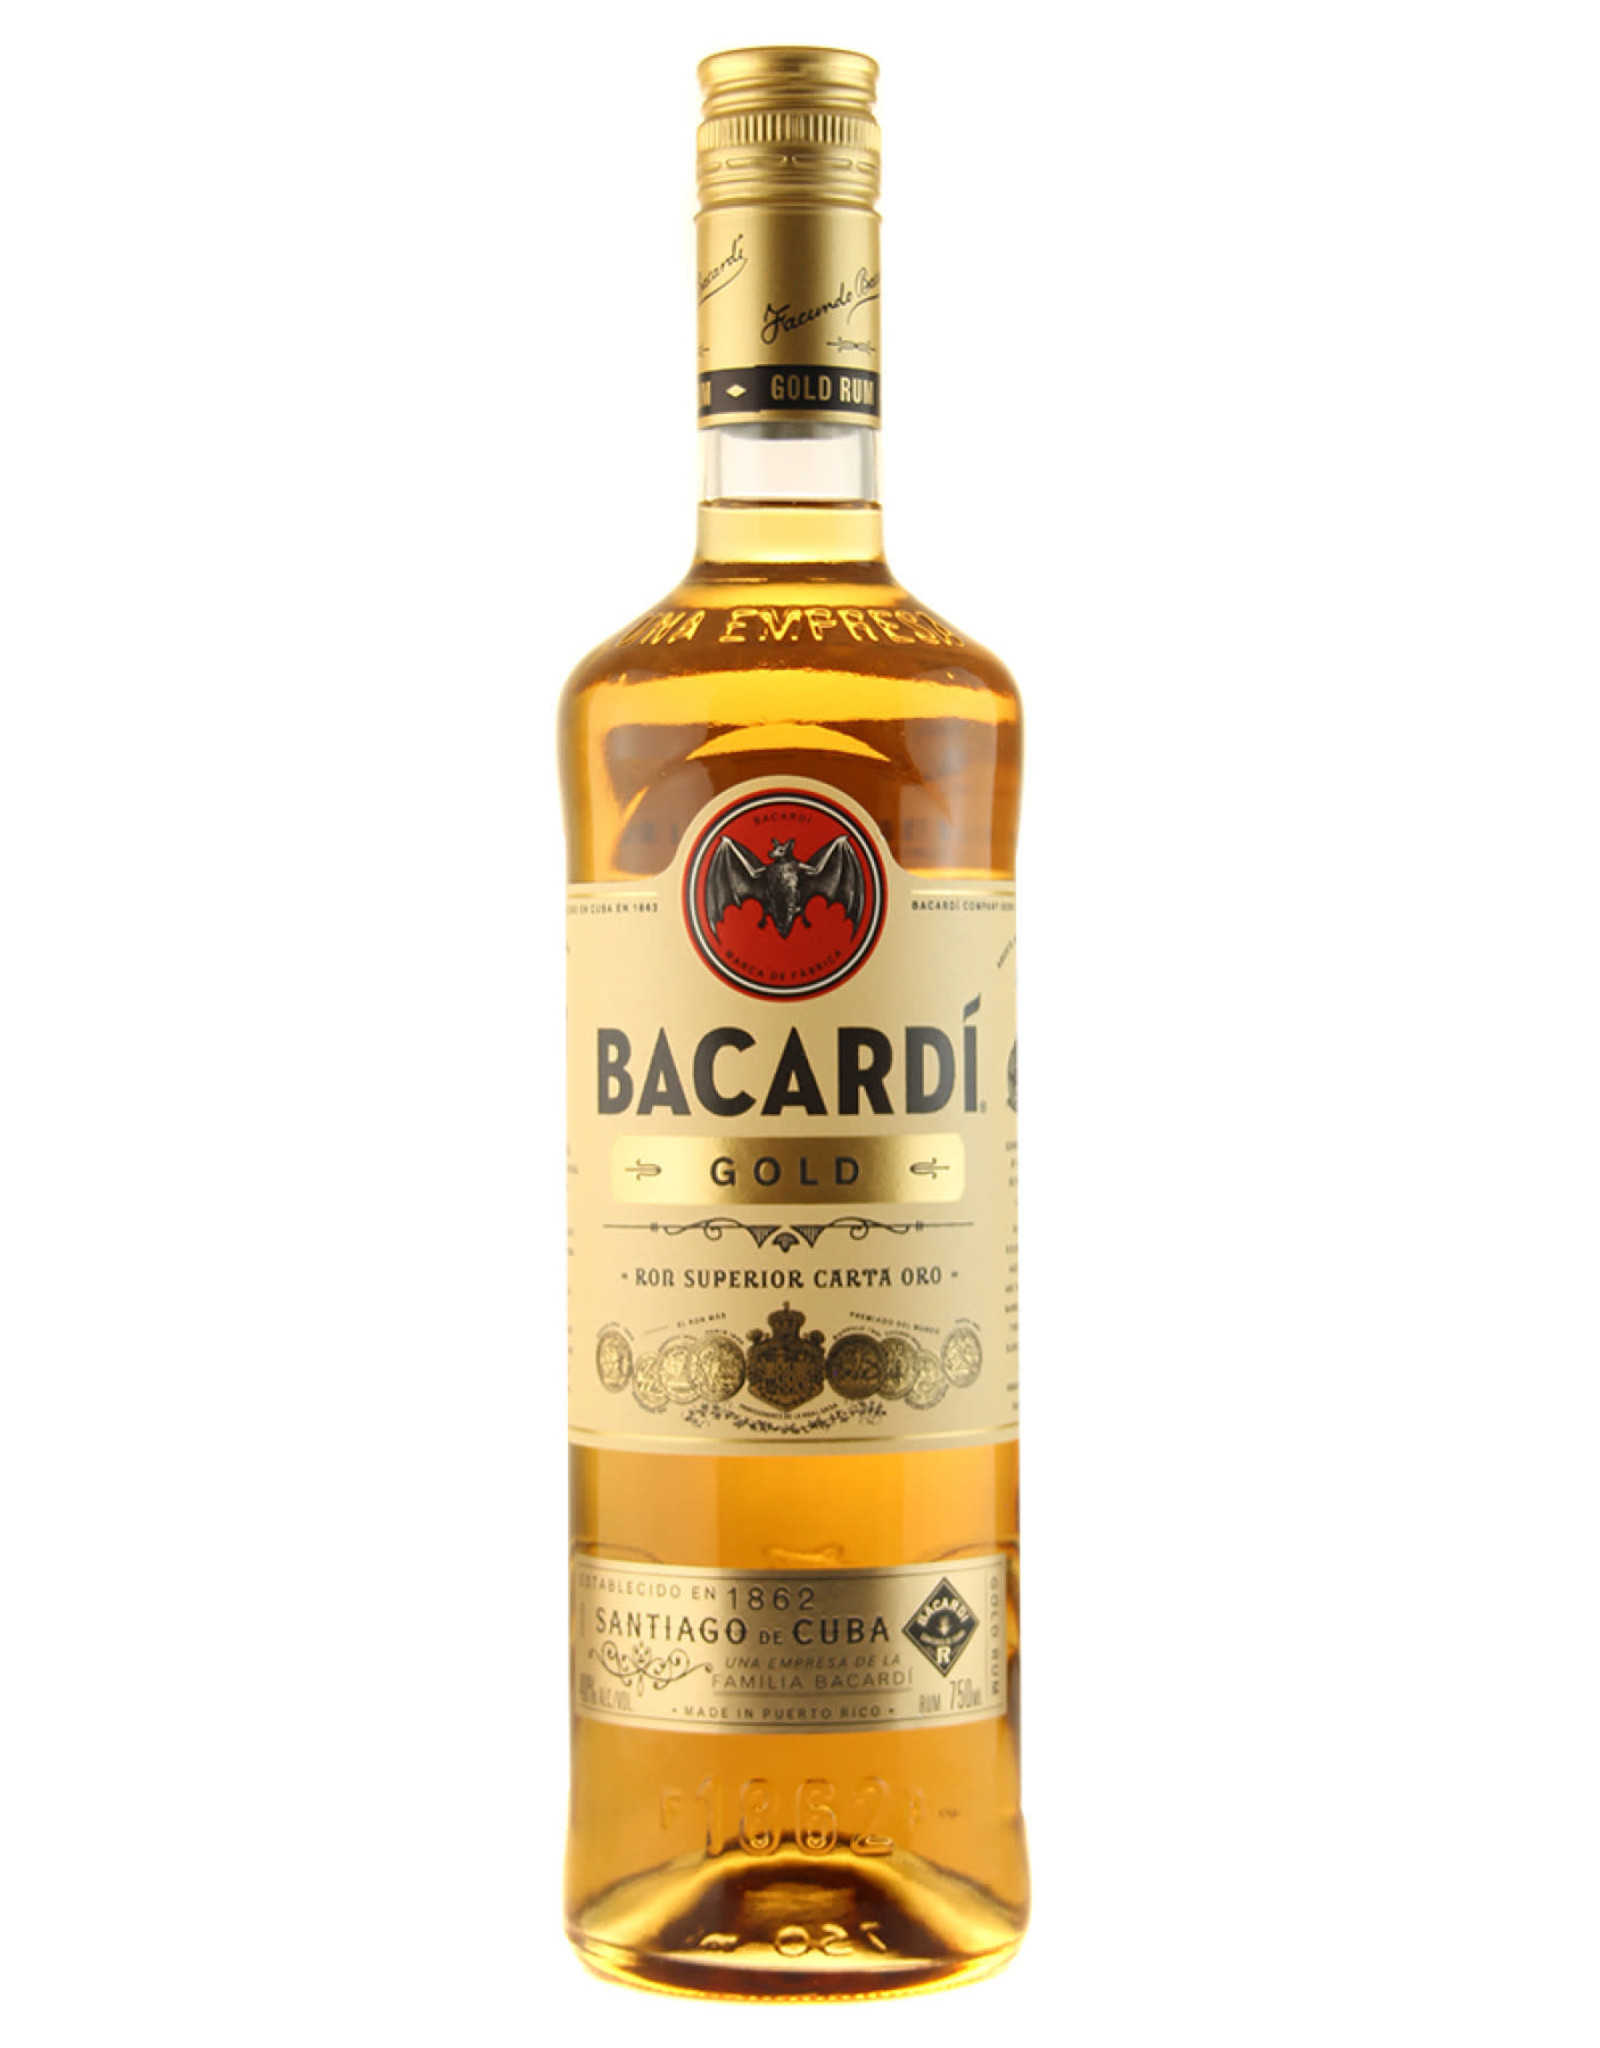 Bacardi Bacardi Rum Gold 750ML